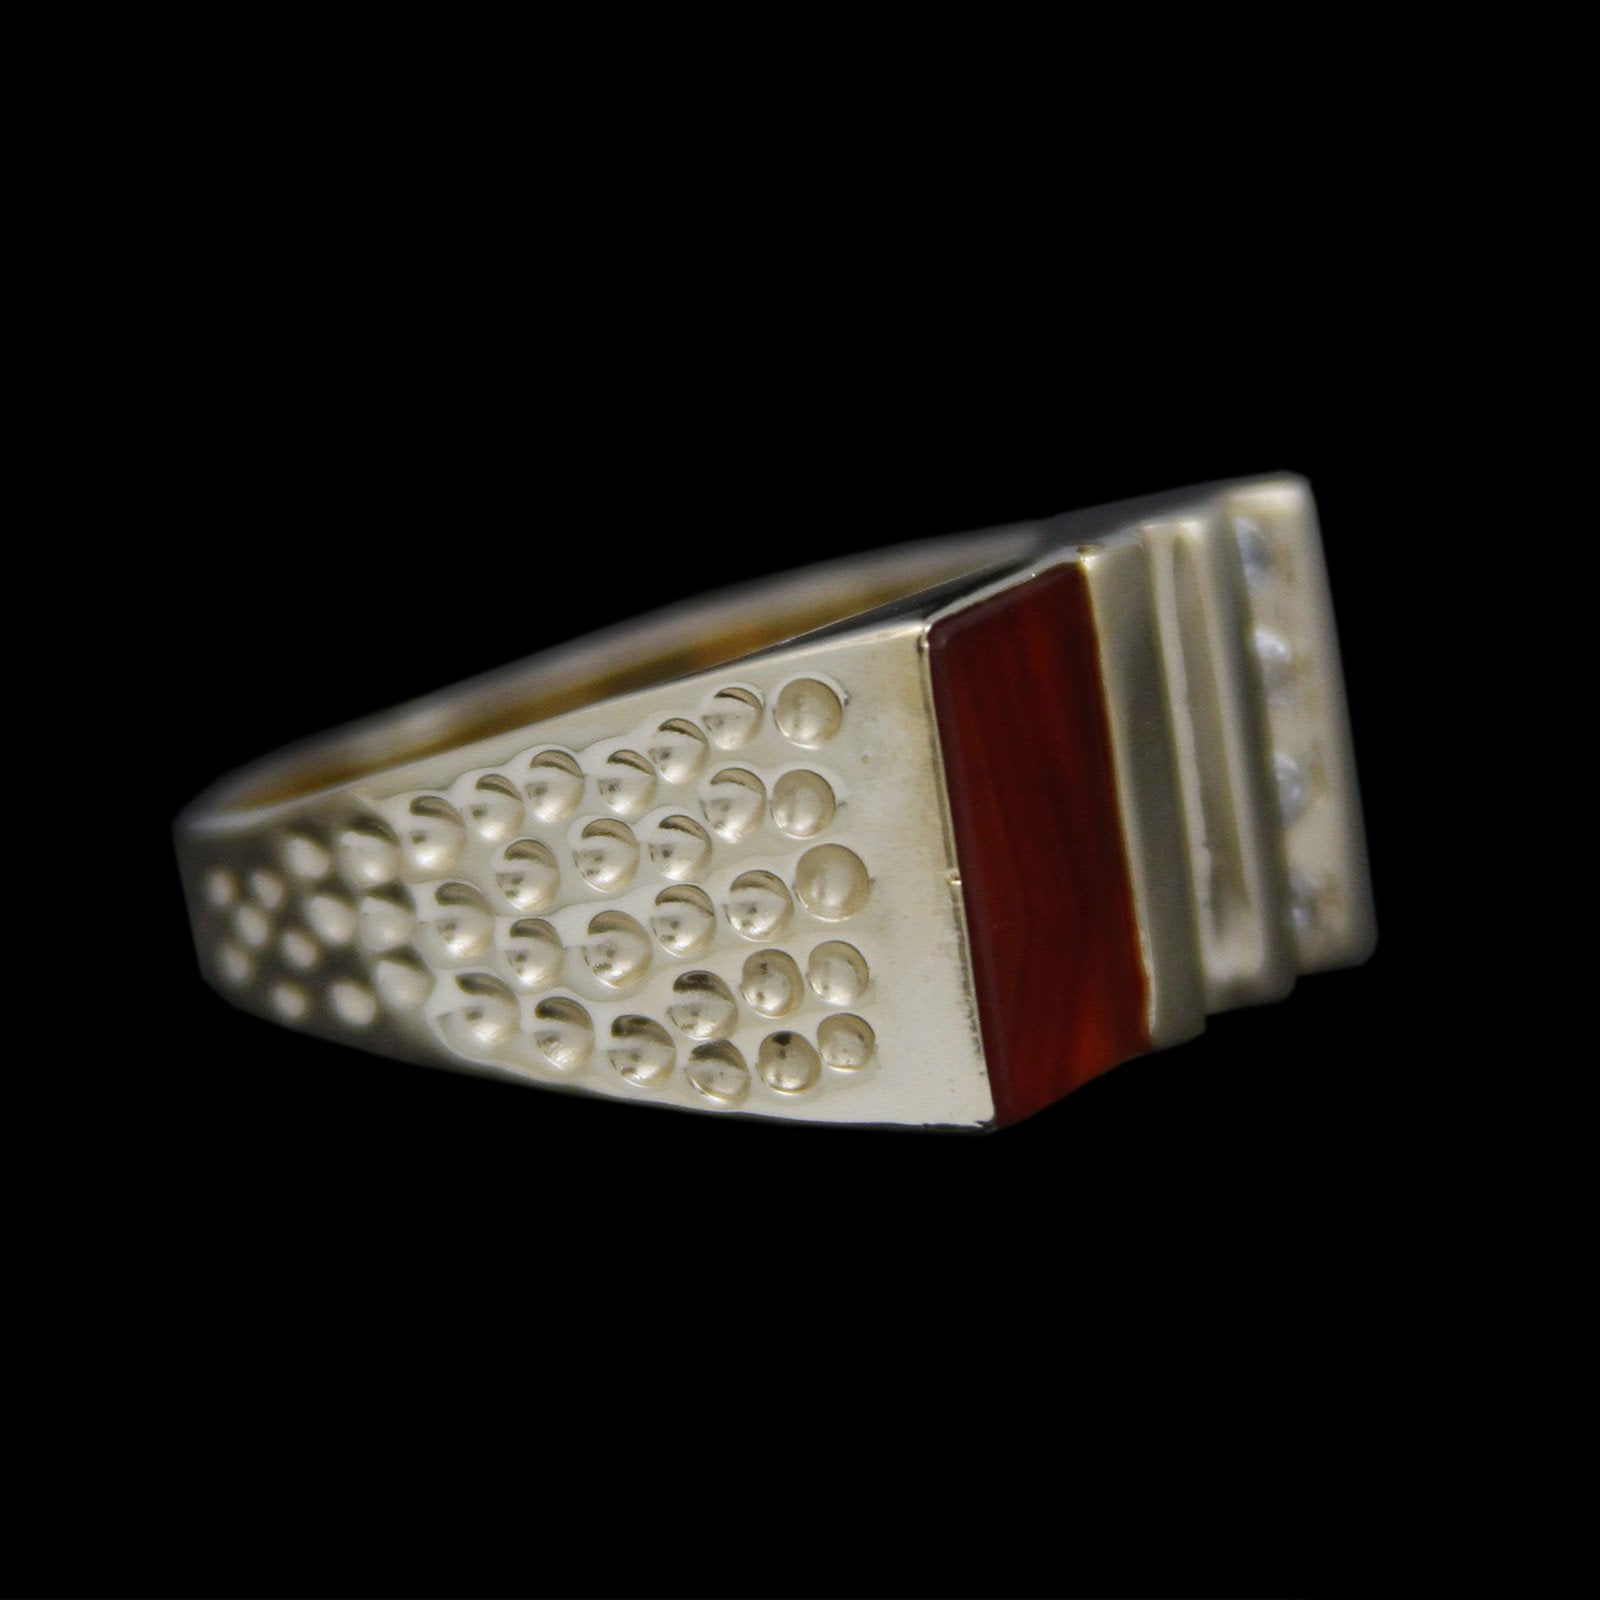 Gents Square Flat Set Sardonyx with Channel Set Diamonds & Dimpled Sides in 14K Yellow Gold-2